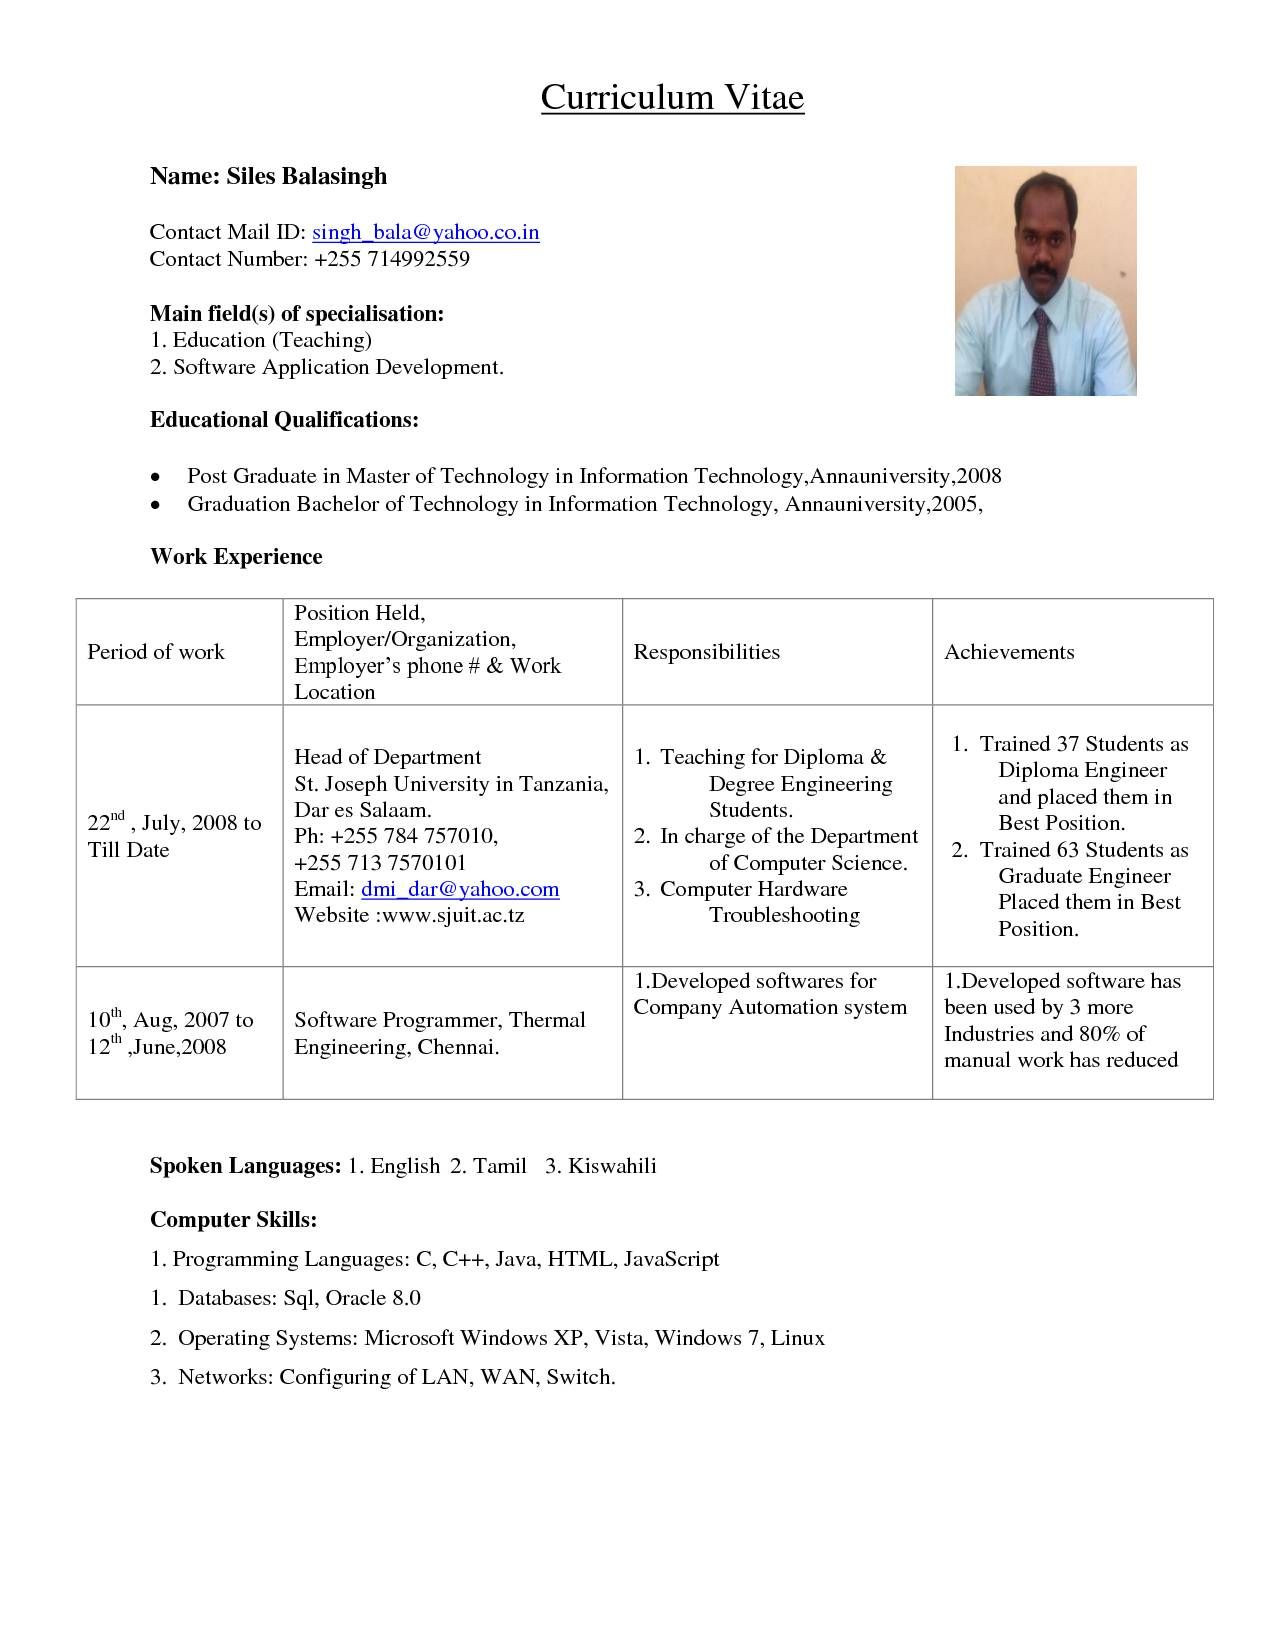 resume format for lecturer job in engineering college